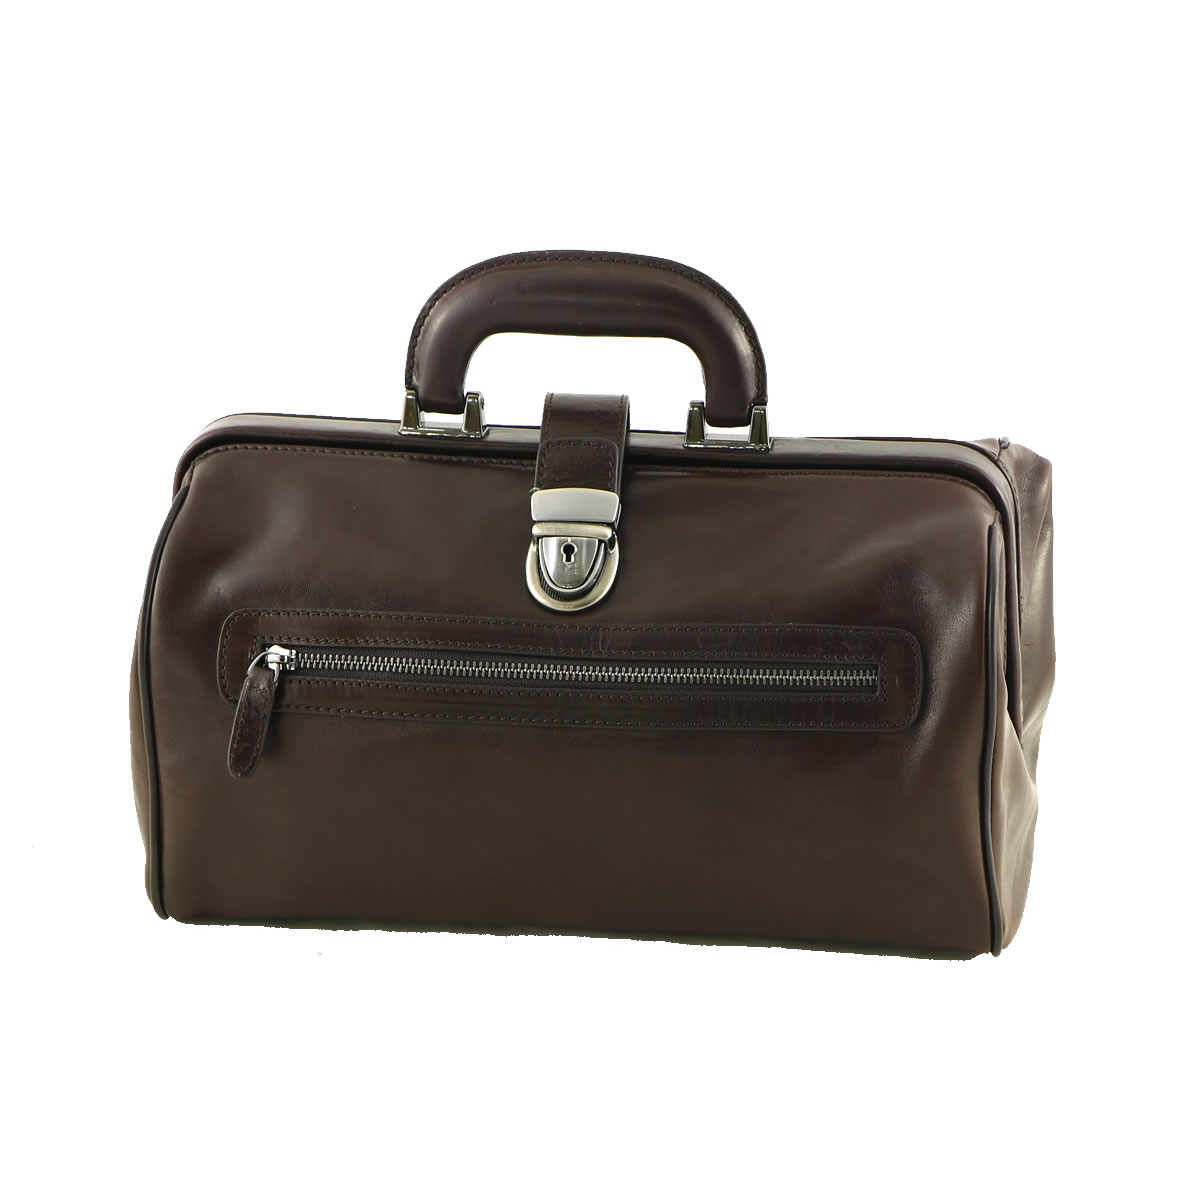 Doctor-bag-brown-leather